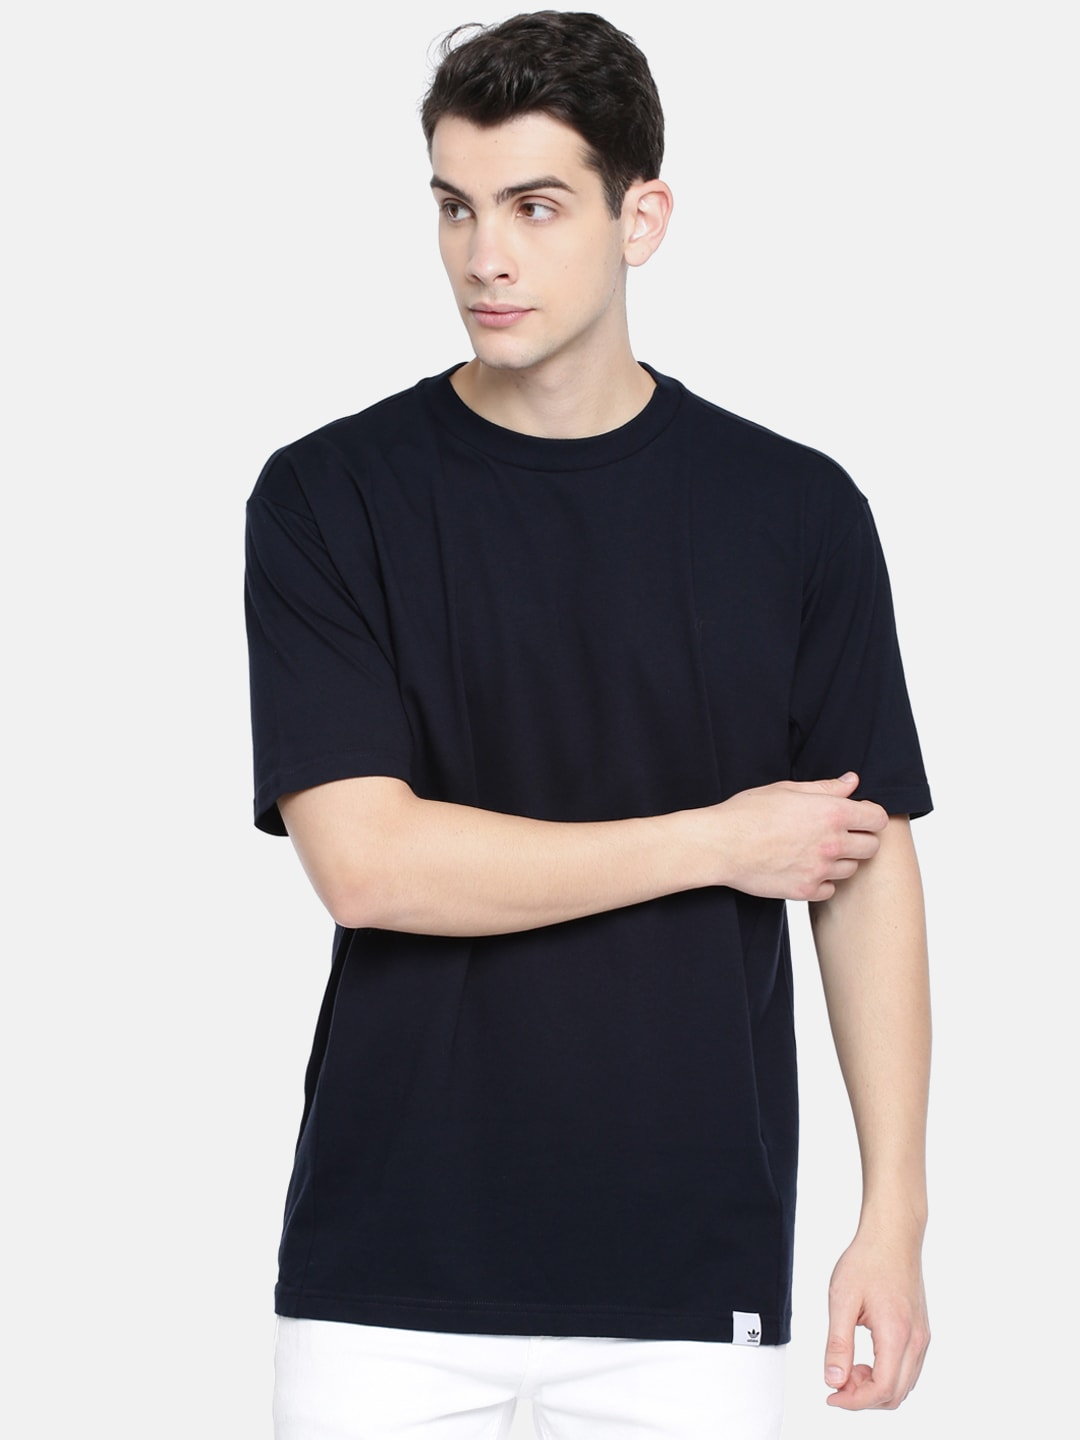 online store 8dcc7 1d70d Adidas T-Shirts - Buy Adidas Tshirts Online in India   Myntra